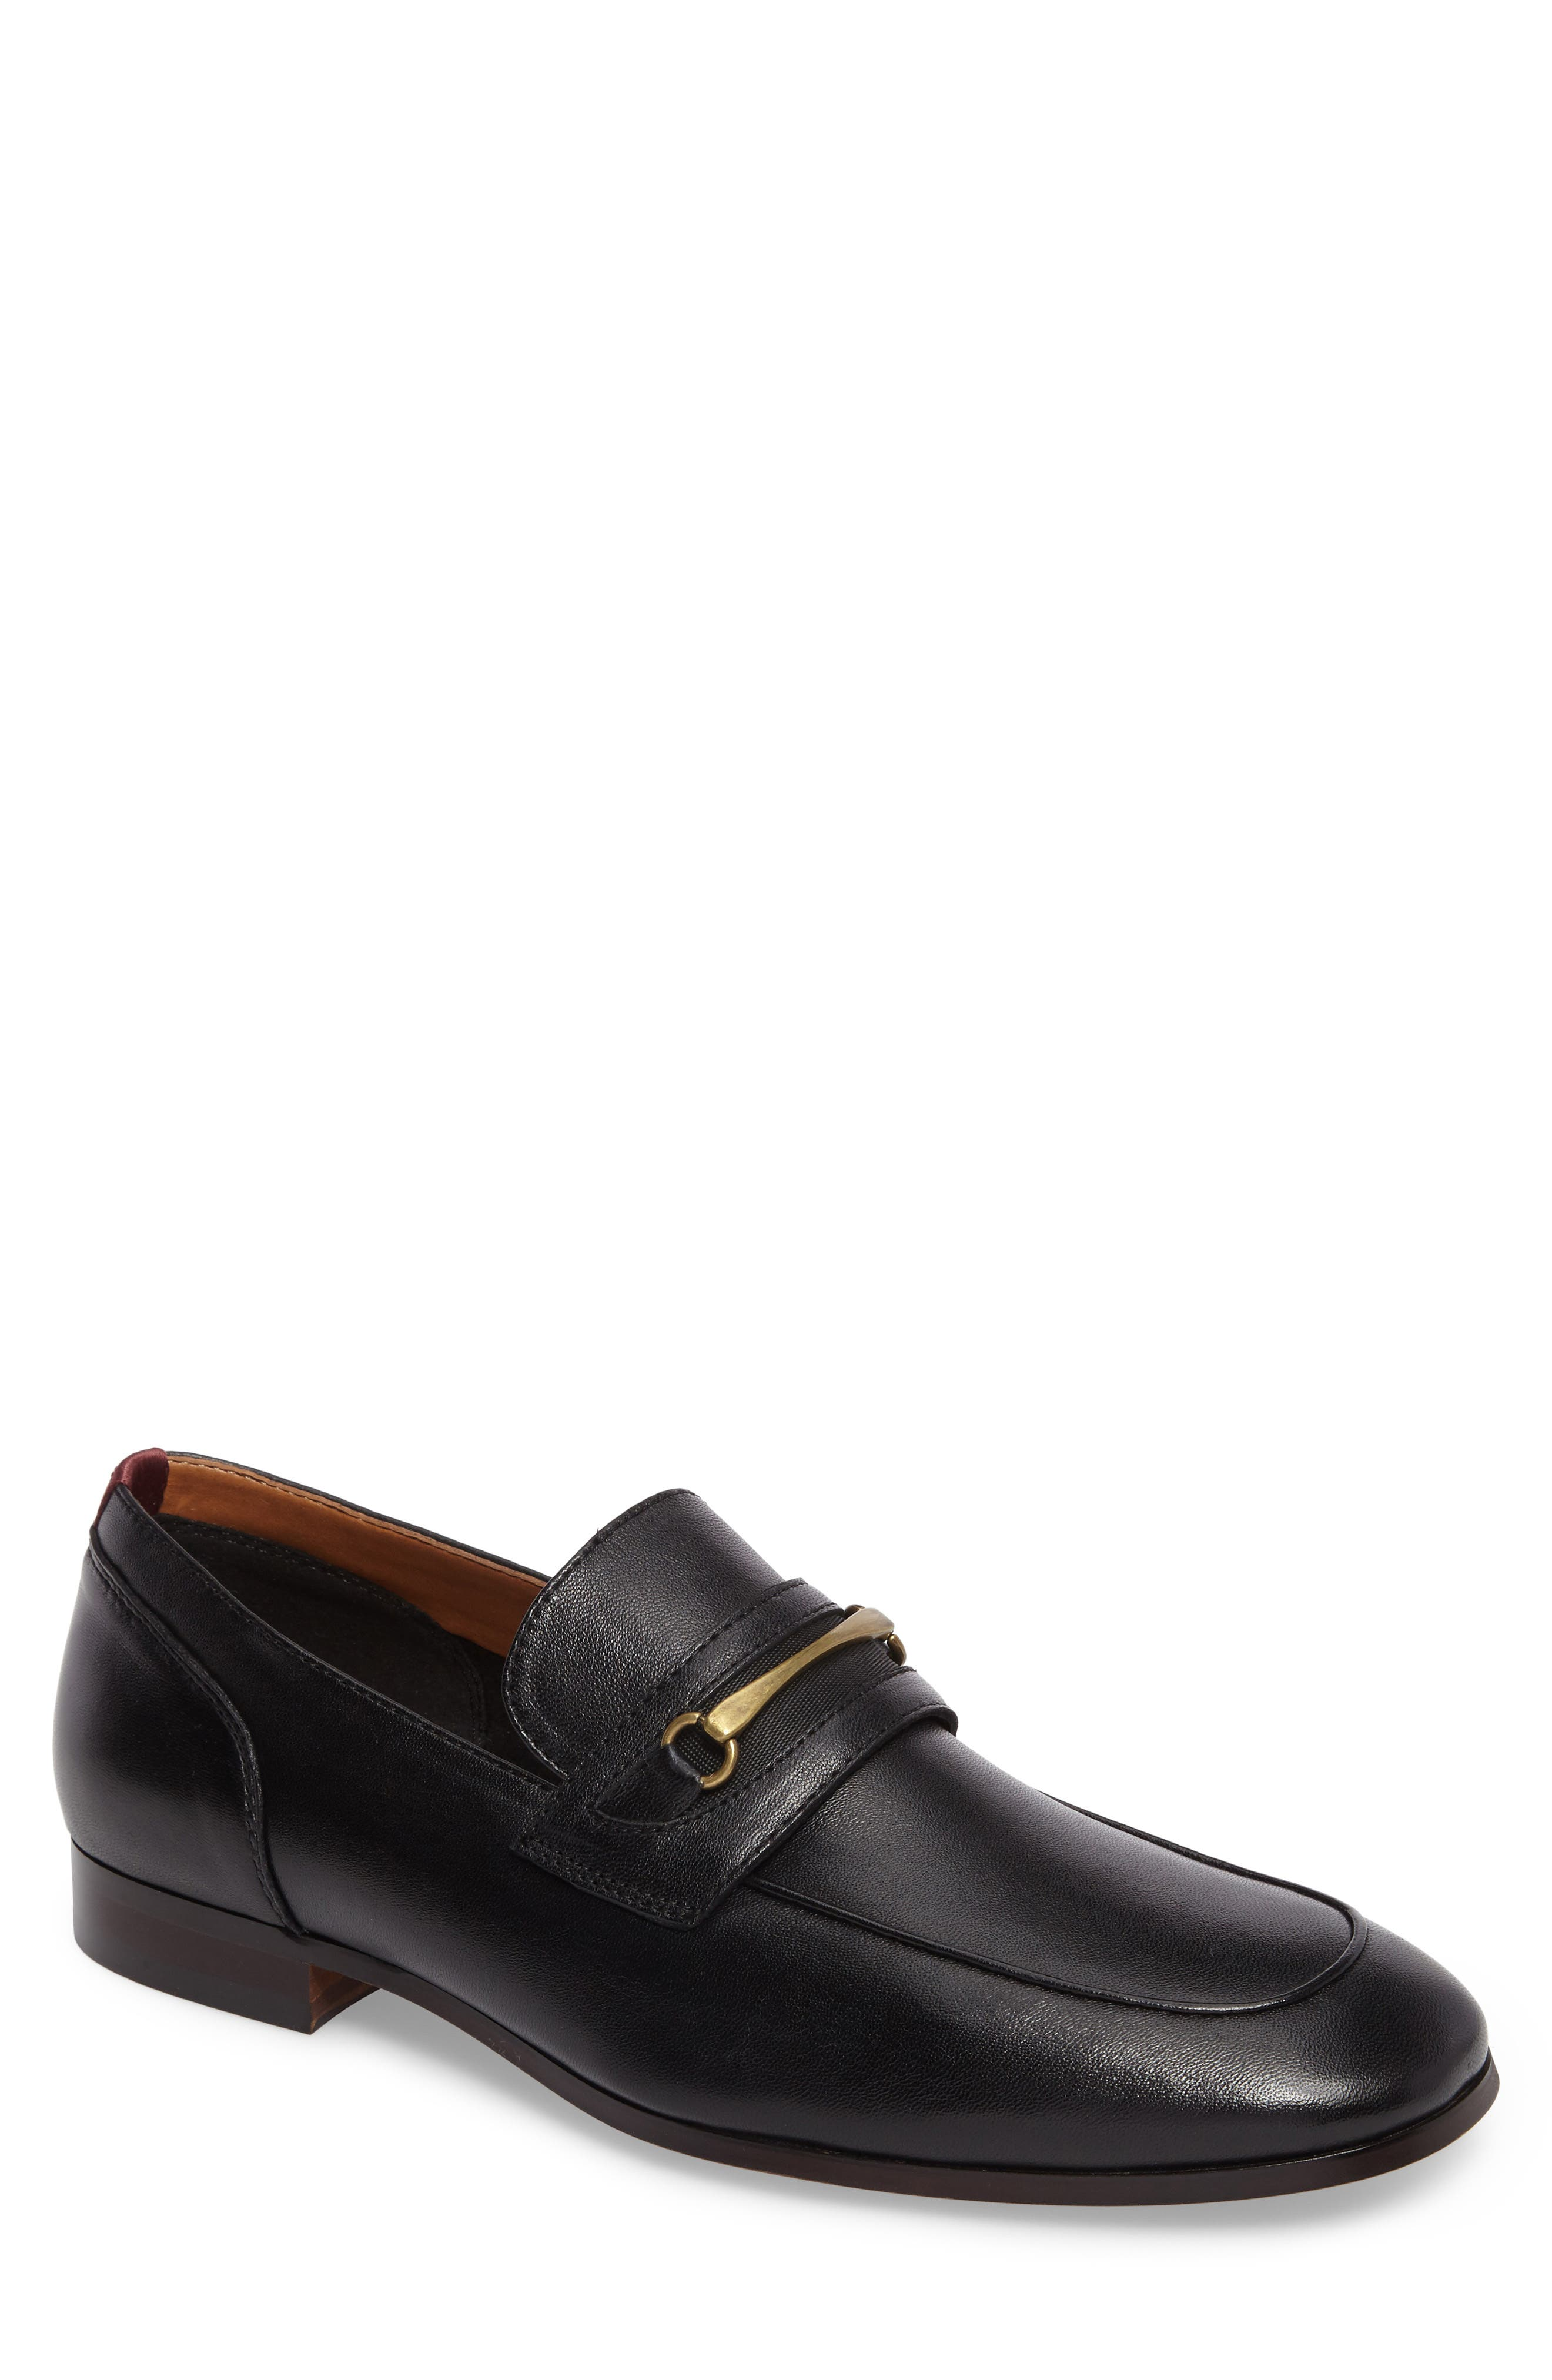 Alternate Image 1 Selected - ALDO Murat Bit Loafer (Men)